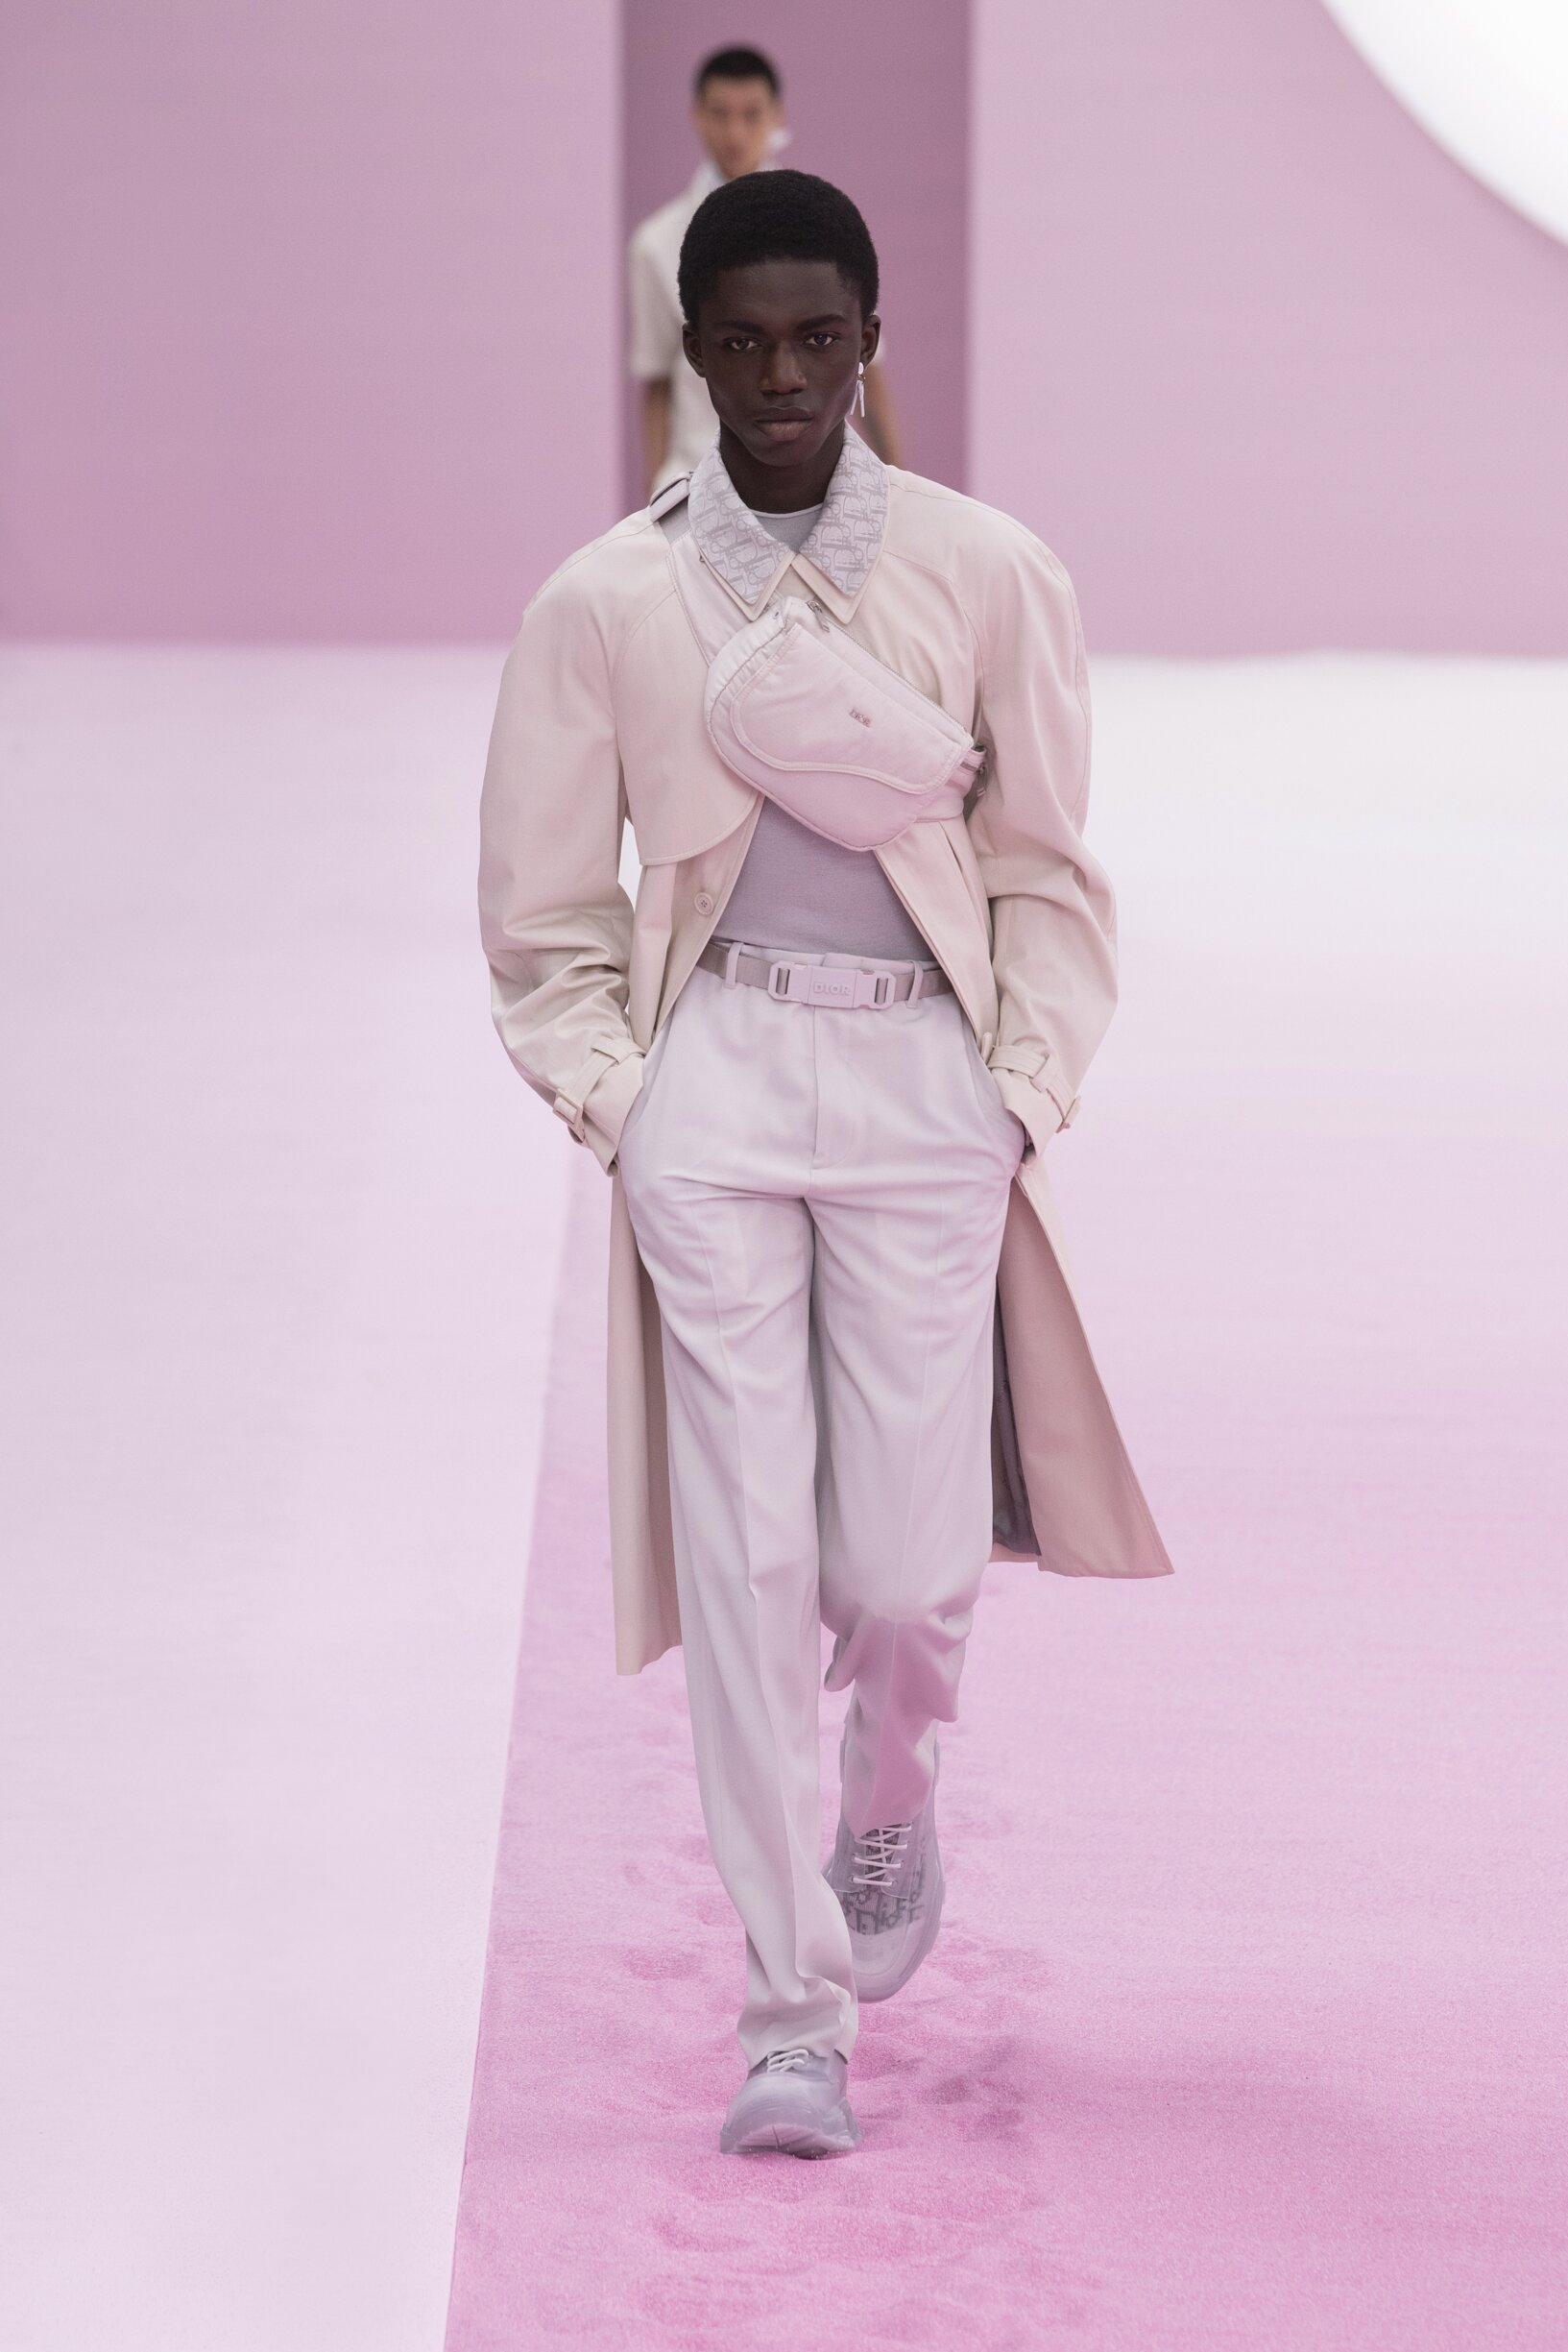 DIOR SPRING SUMMER 2020 MEN'S COLLECTION | The Skinny Beep